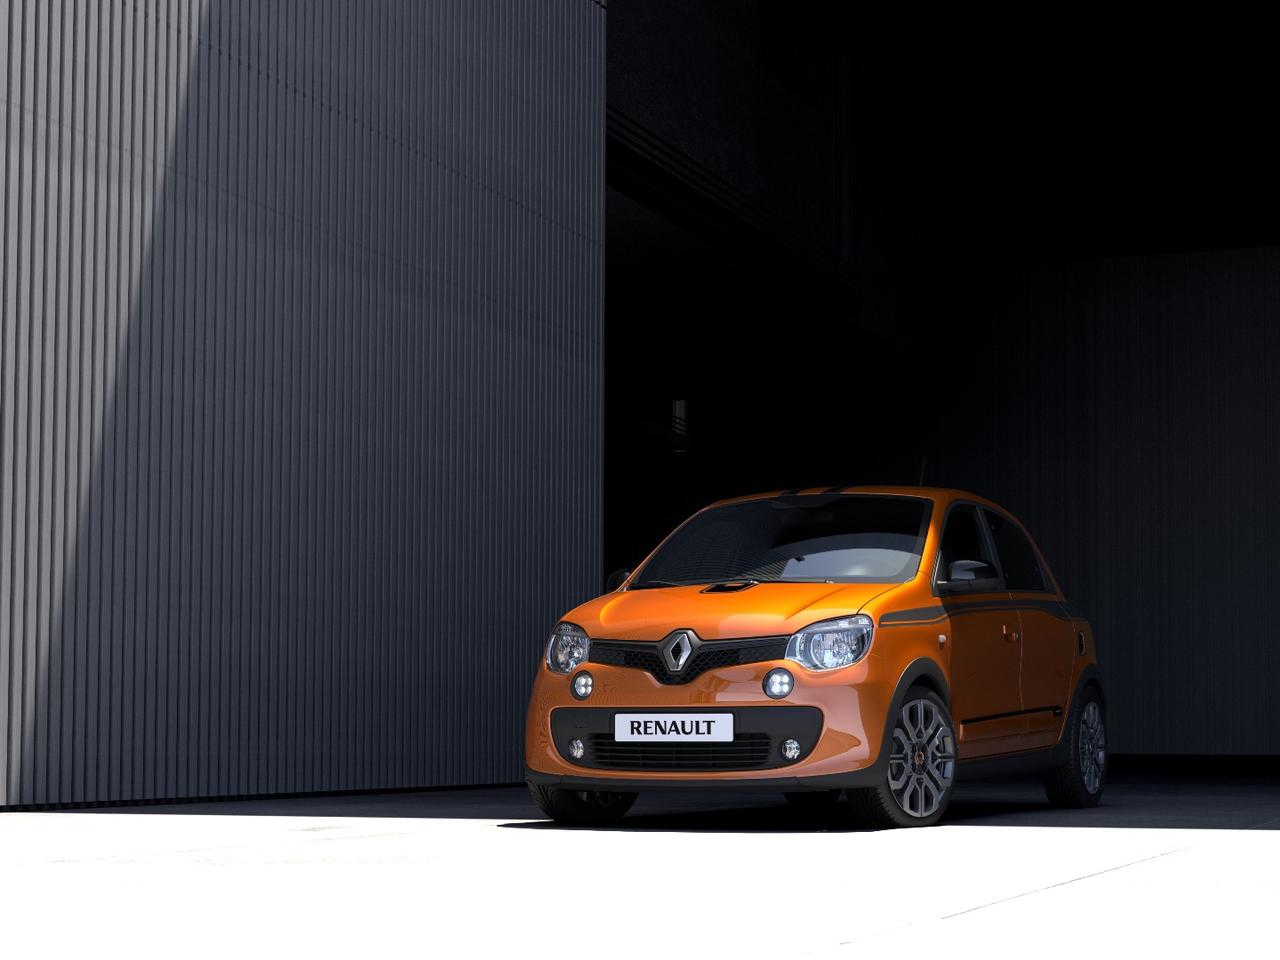 The Renault Twingo GT gets more power and a unique suspension to set it apart from regular Twingos